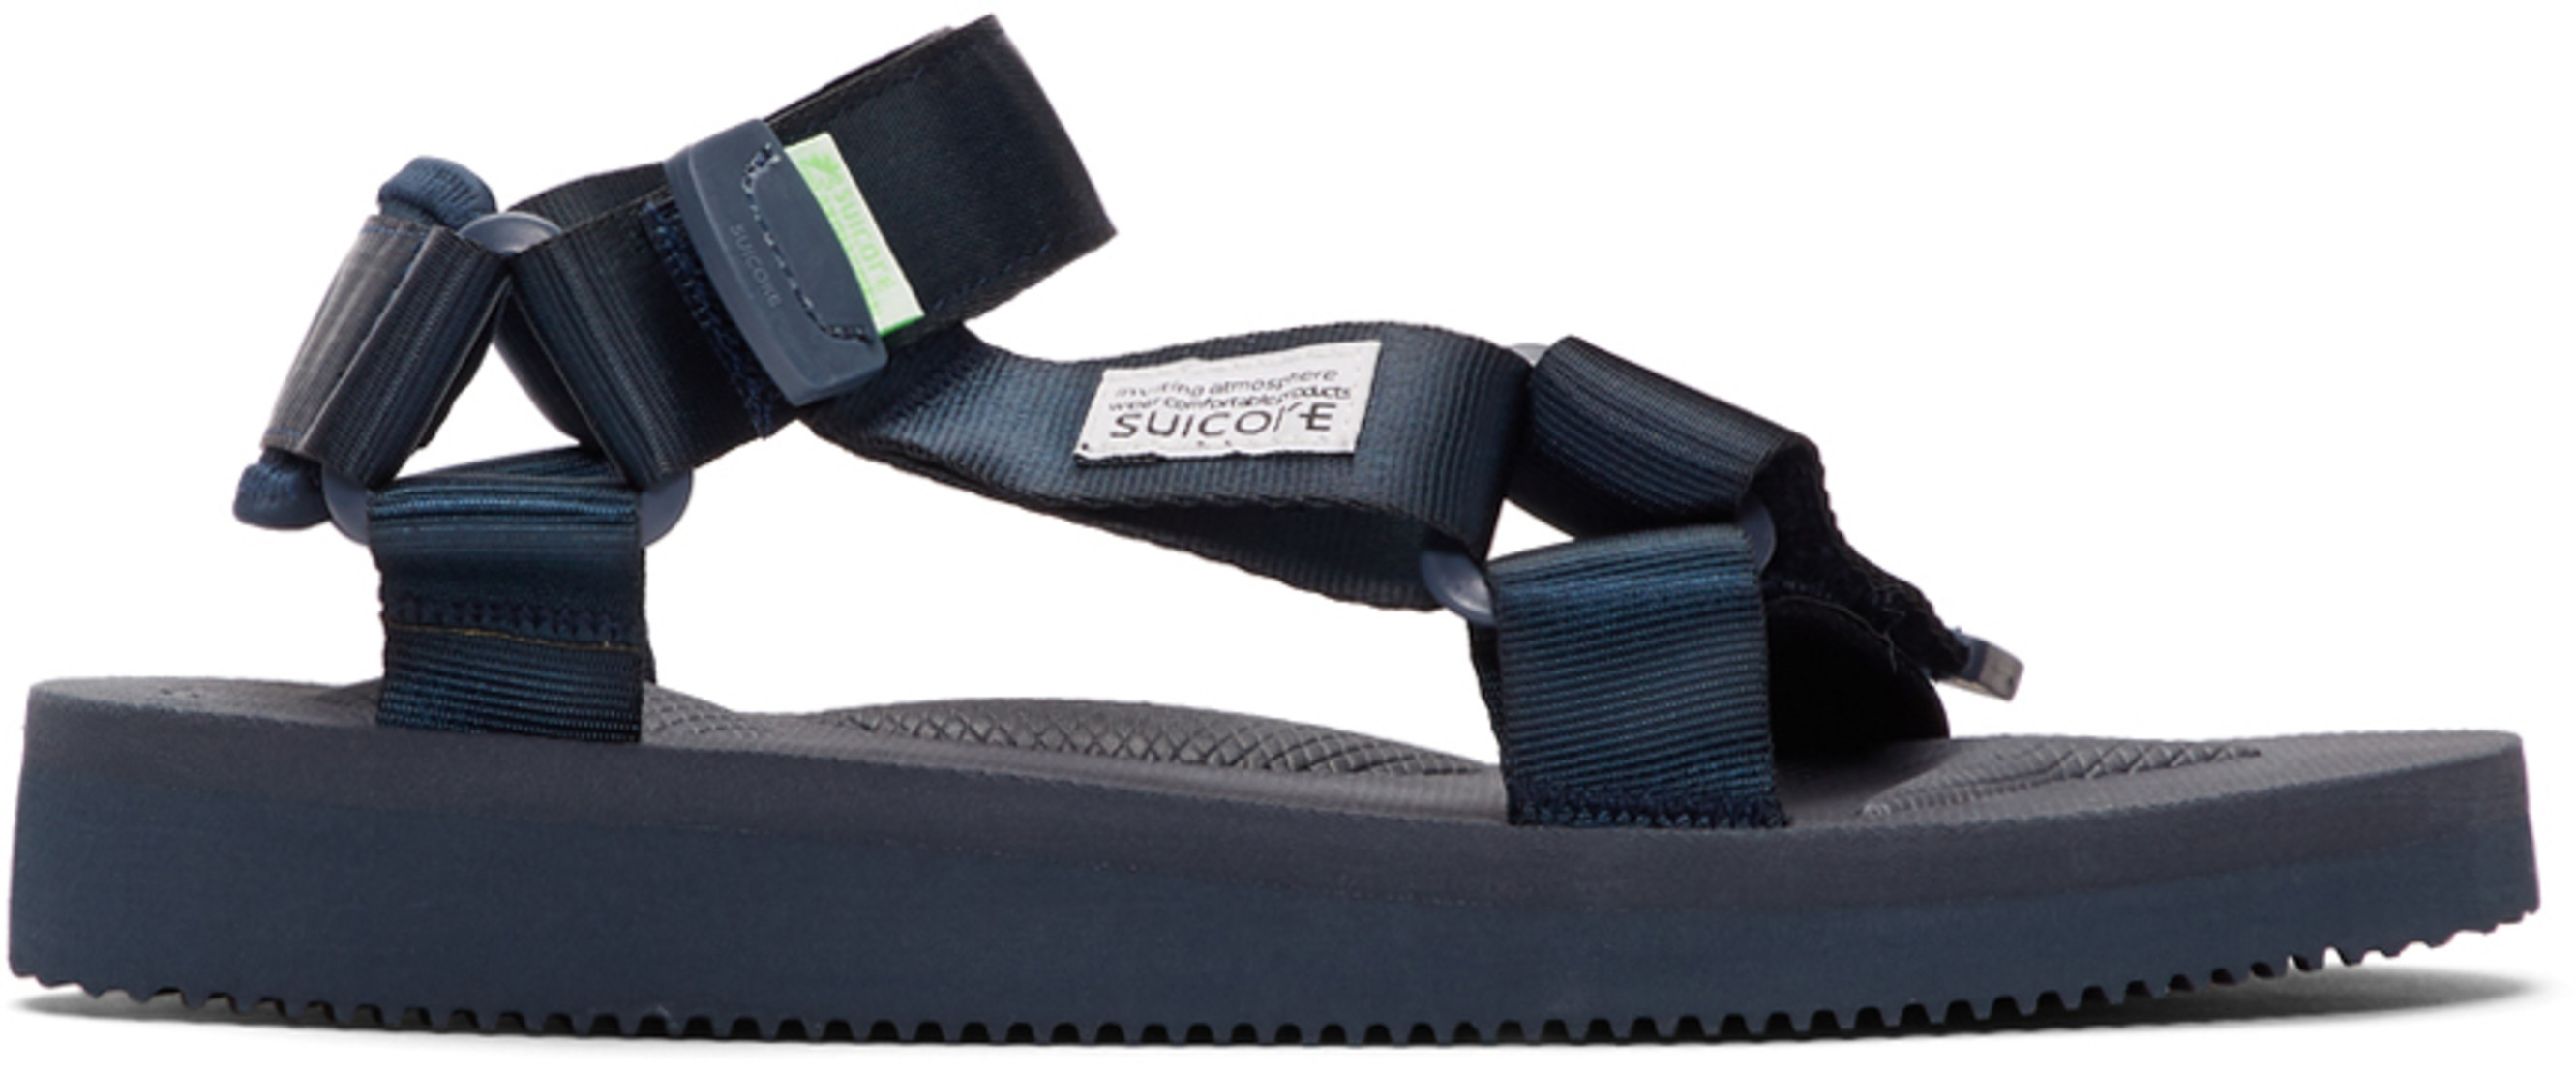 5ae2090375 Suicoke for Men SS19 Collection | SSENSE